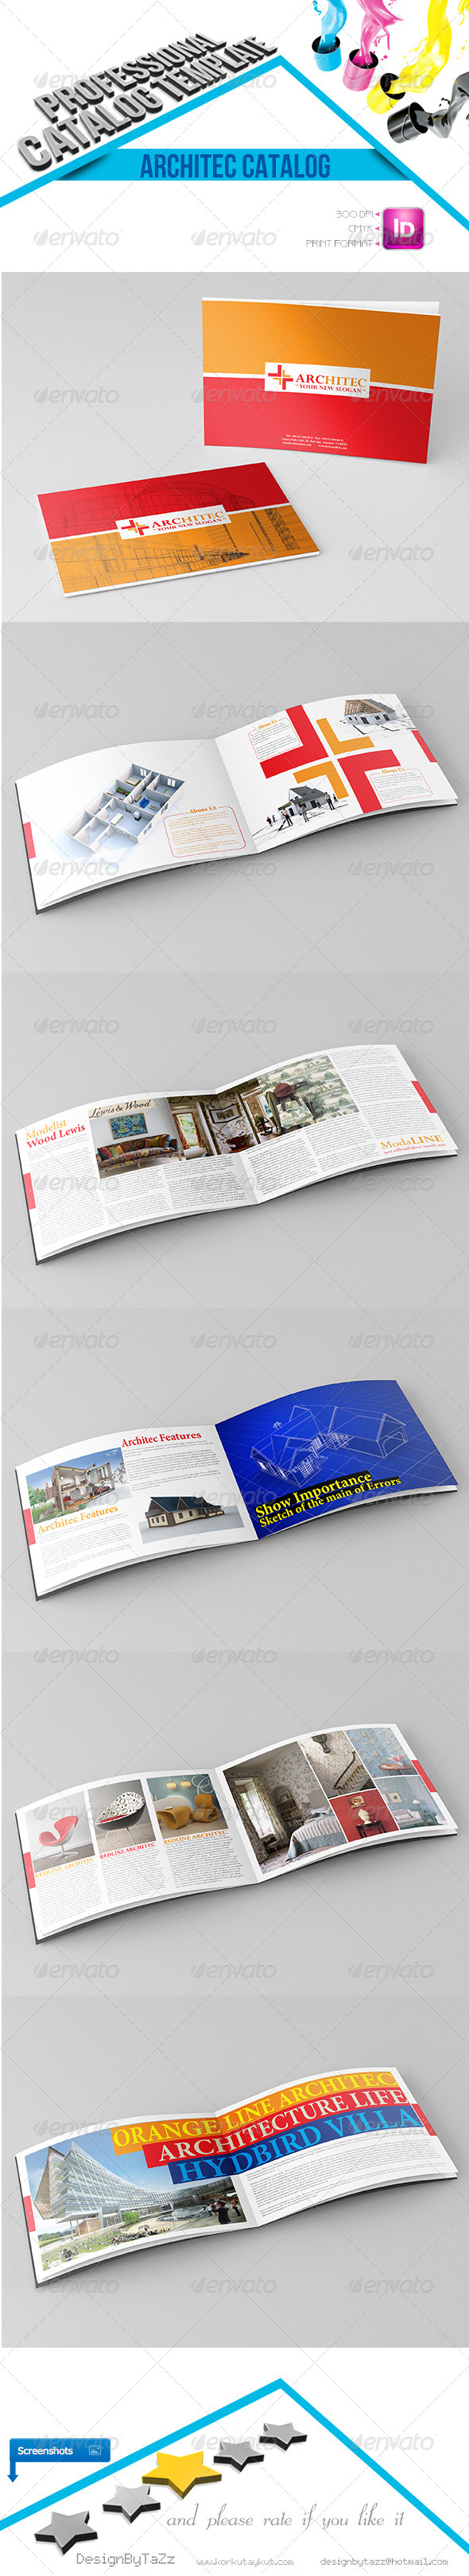 GraphicRiver Architec Corporate Identity Catalog 4534650